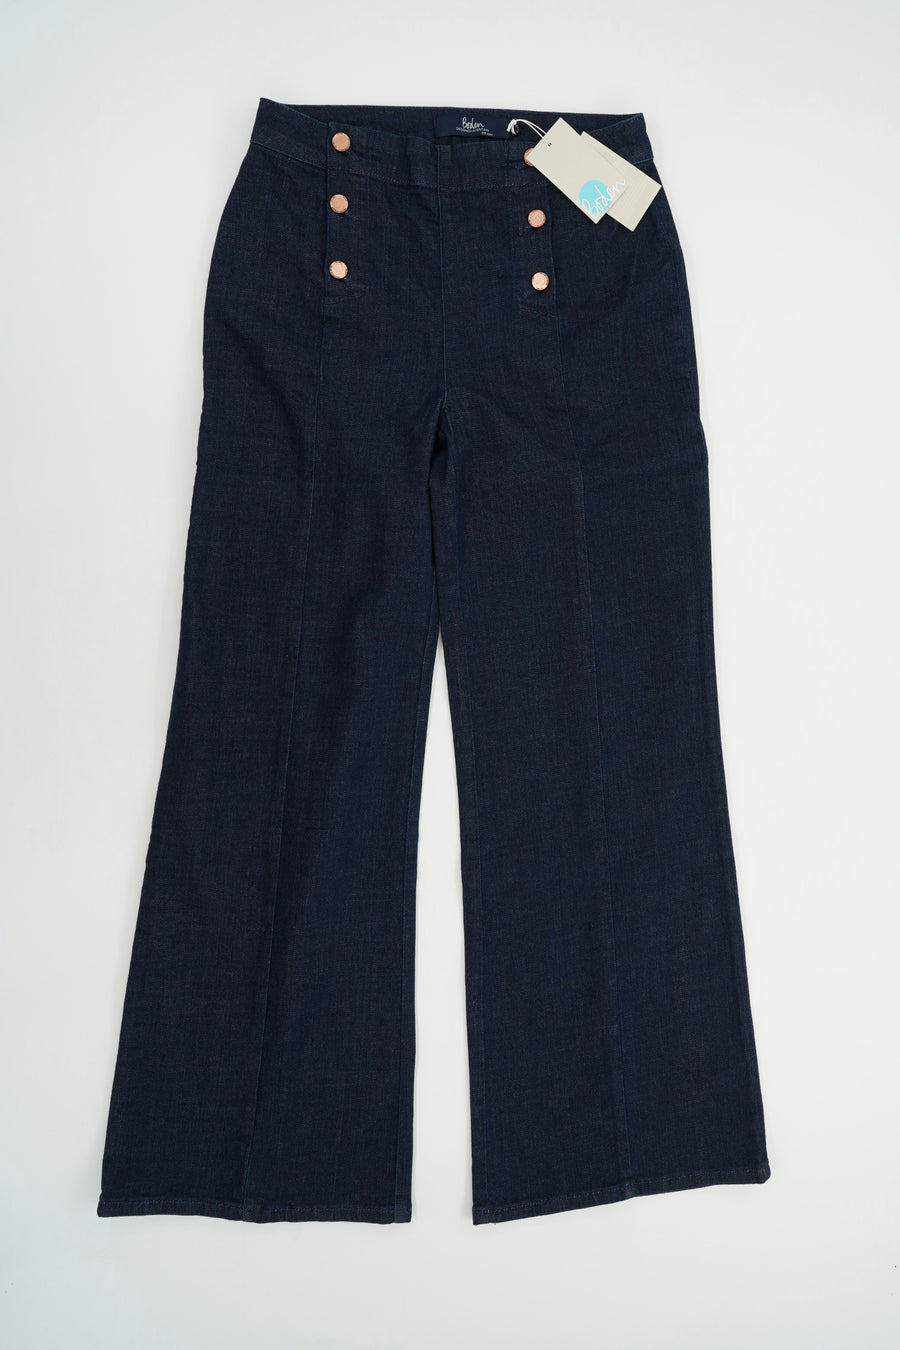 Sailor Dark Washed Denim Jeans Size 8